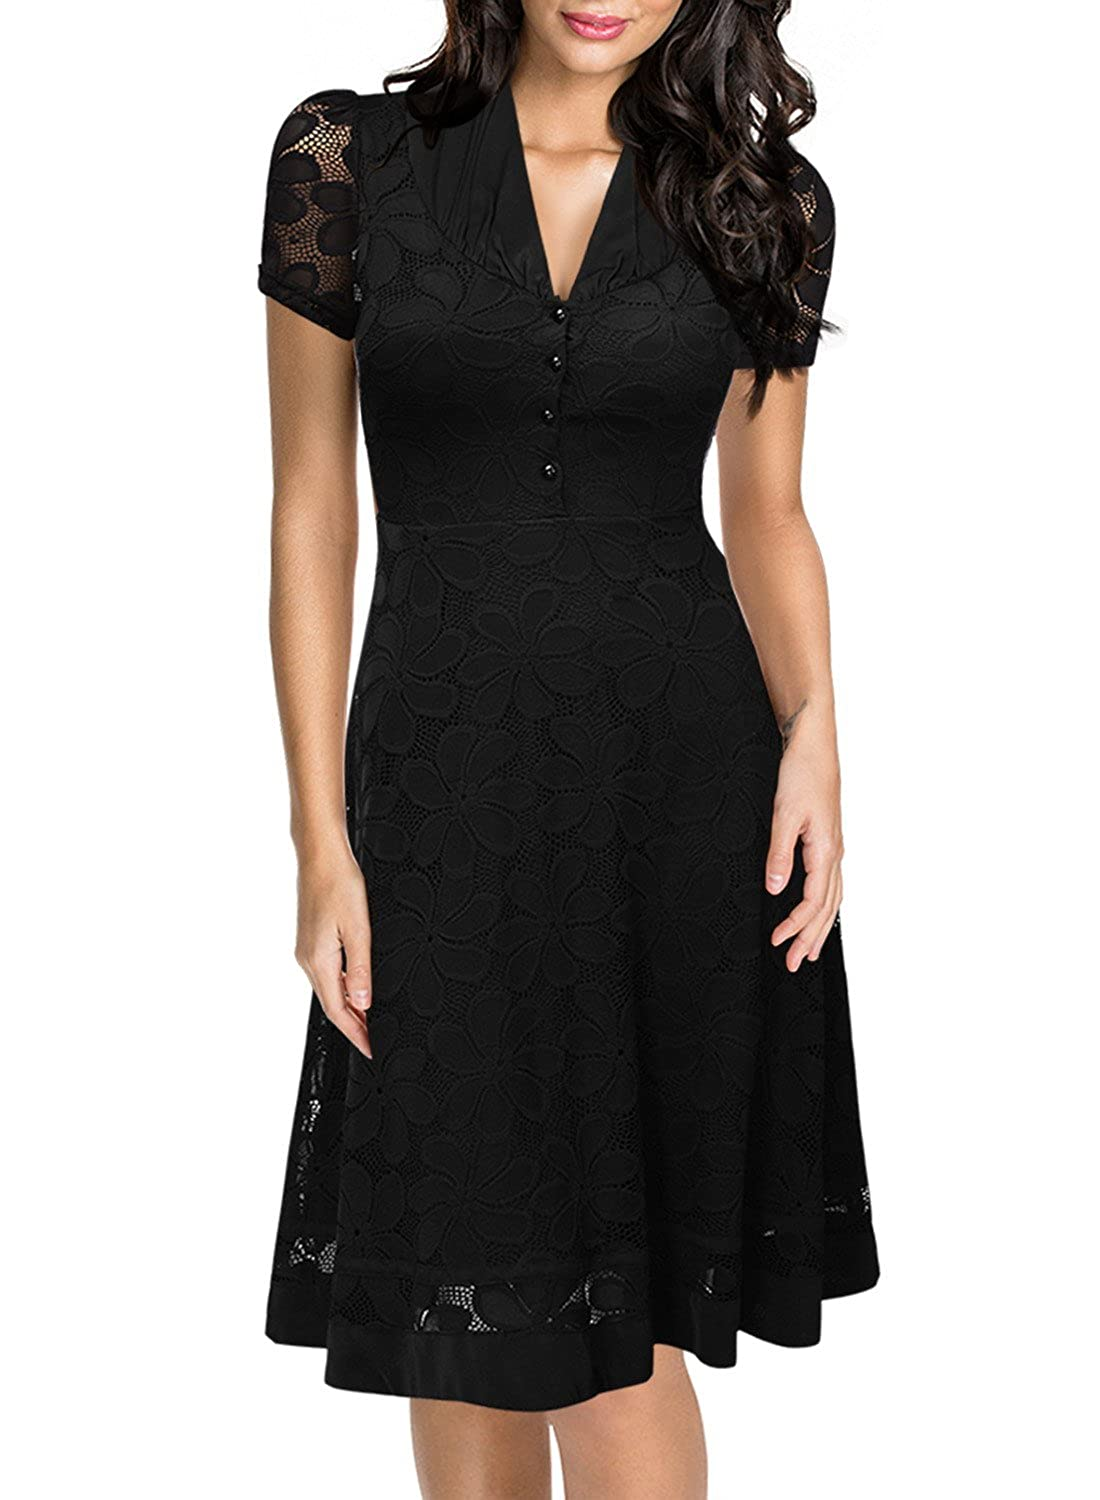 Miusol Women's Retro V-Neck Floral Lace Cap Sleeve Elegant Formal Dress (3220)